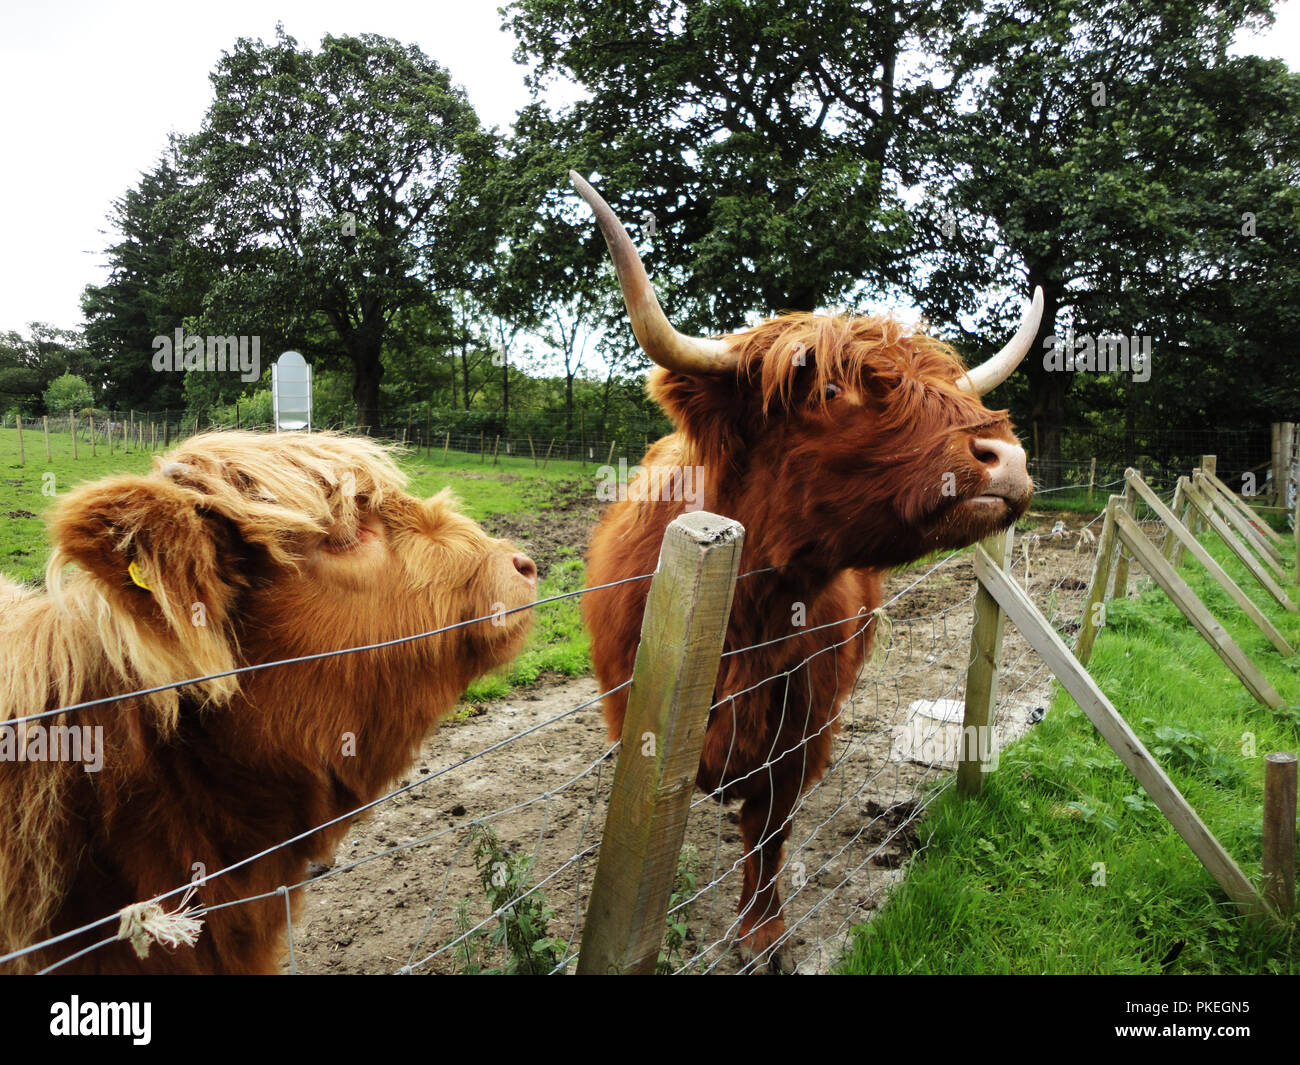 Highland cattle in the Scottish country side - Stock Image